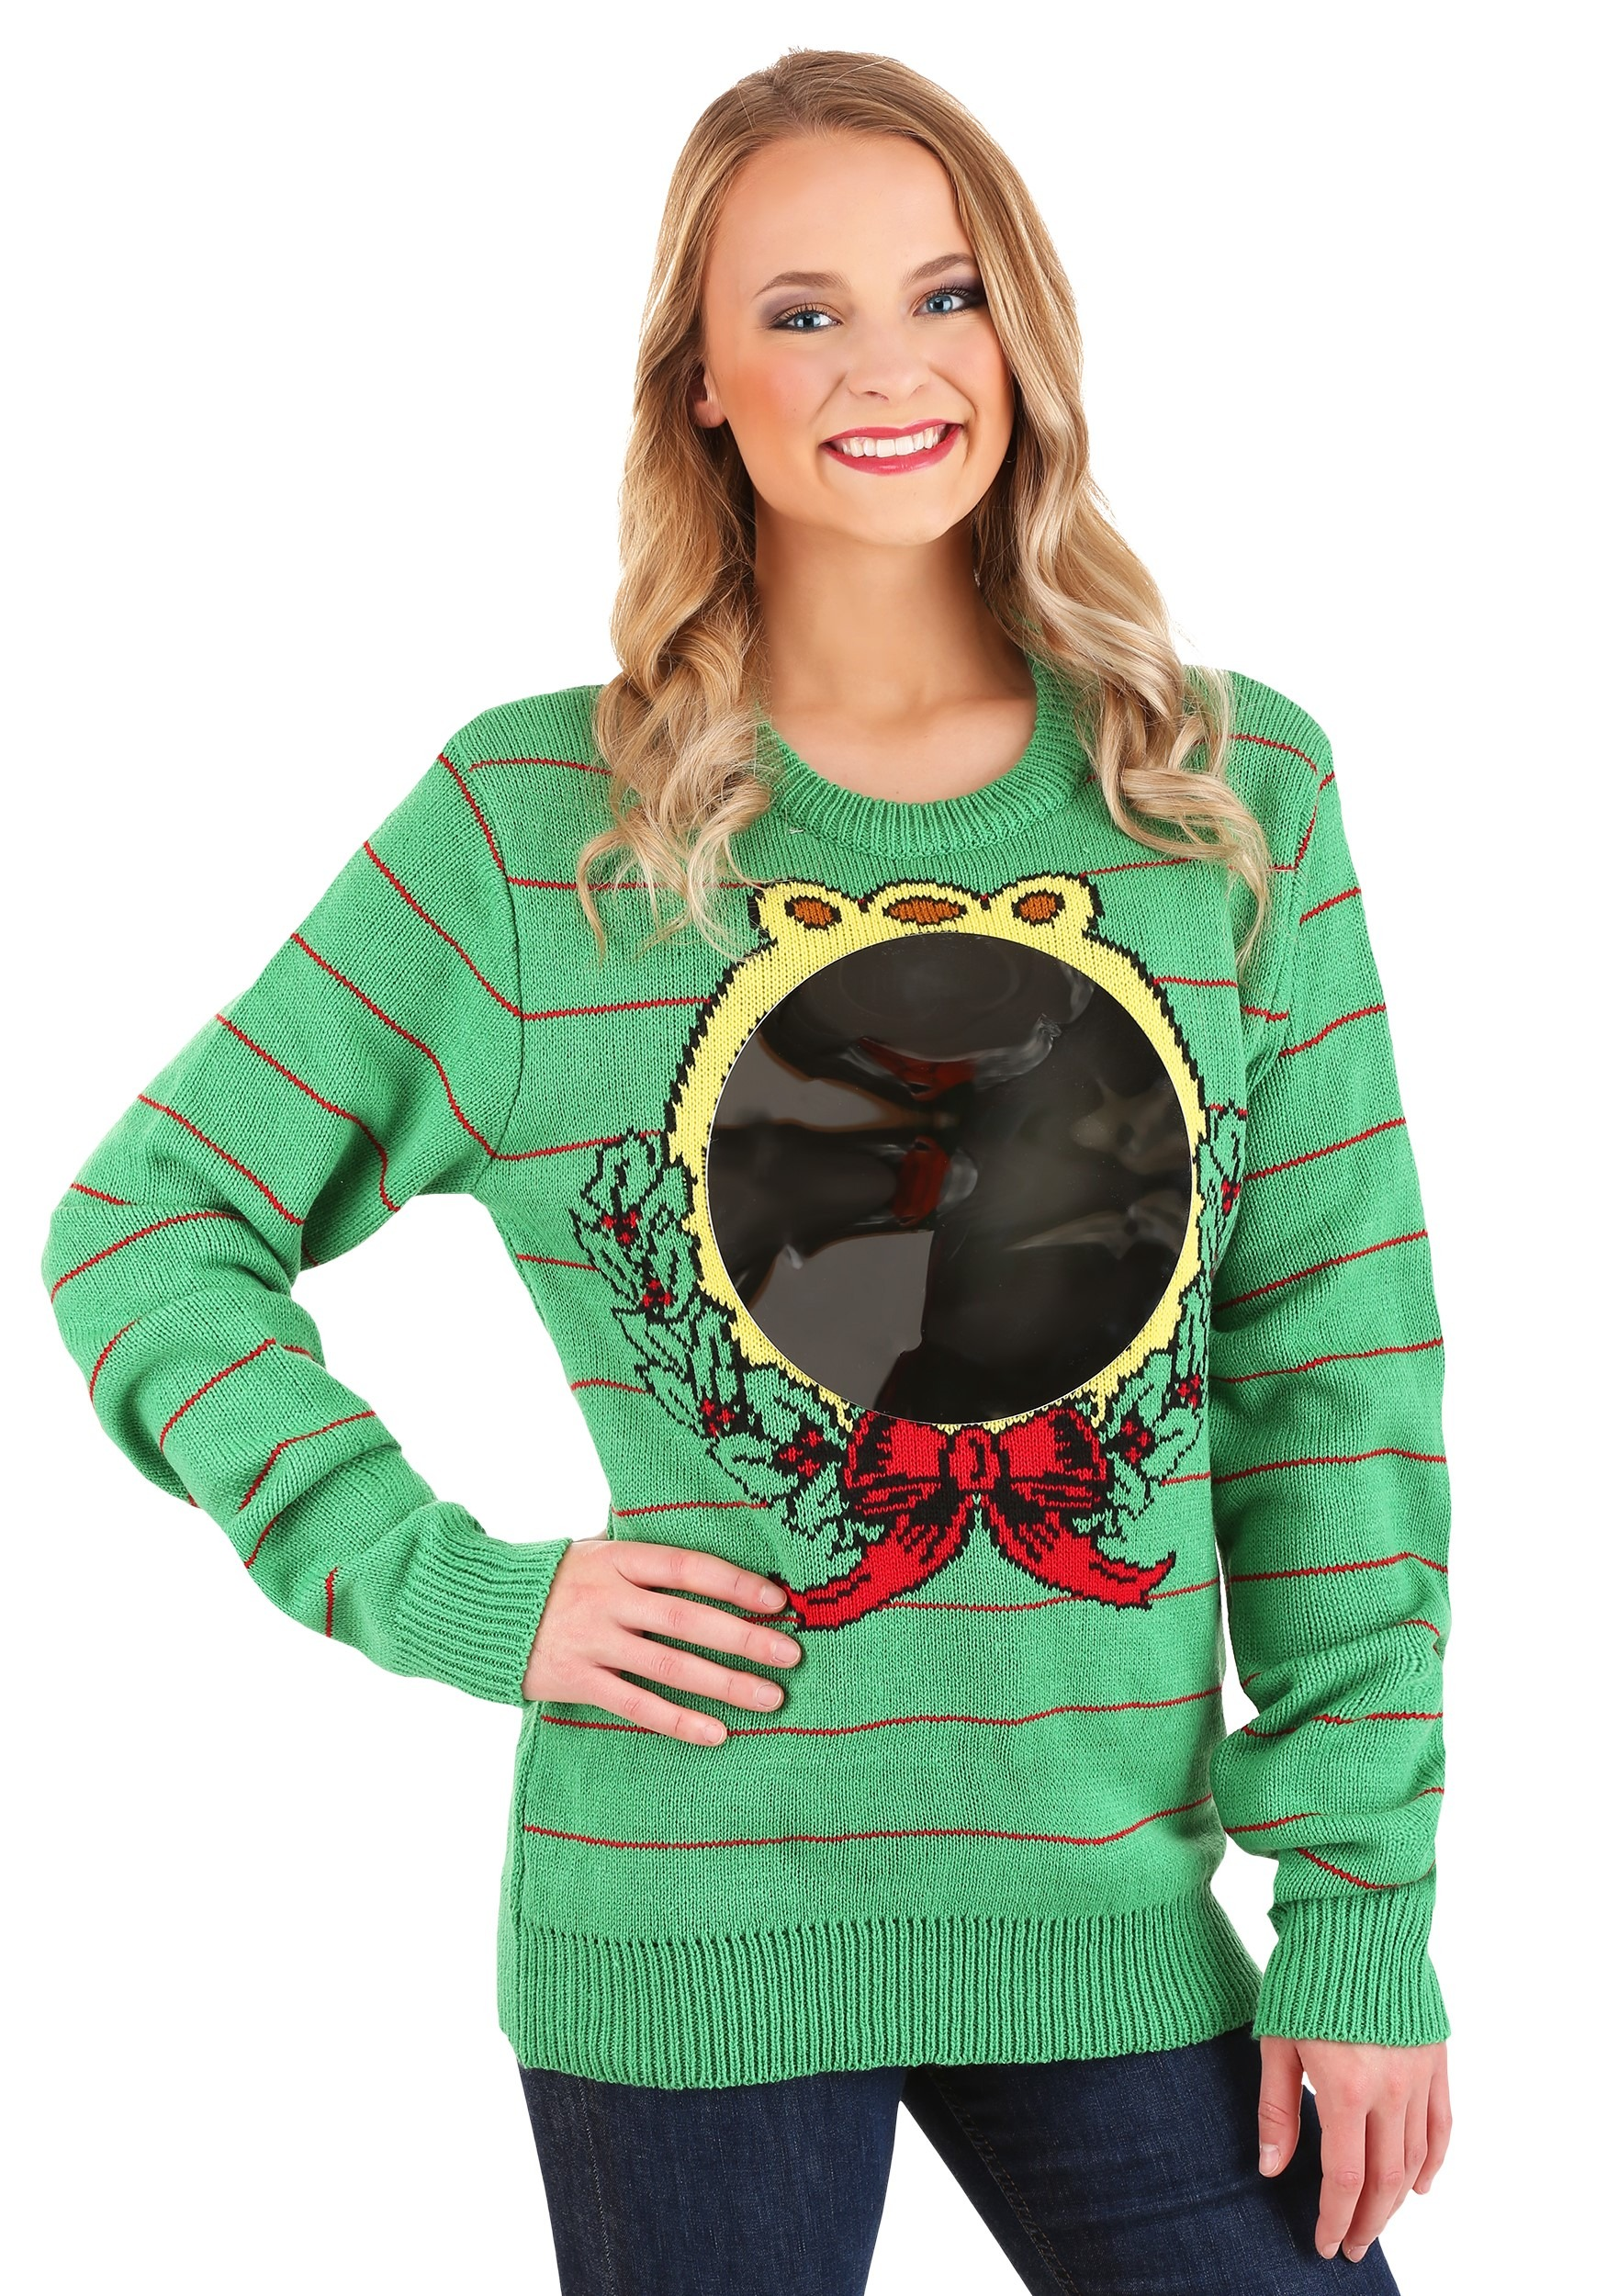 Mirror Ugly Christmas Sweater For Adults Photo by thomas trutschel/photothek via getty images. adult ugly mirror christmas sweater